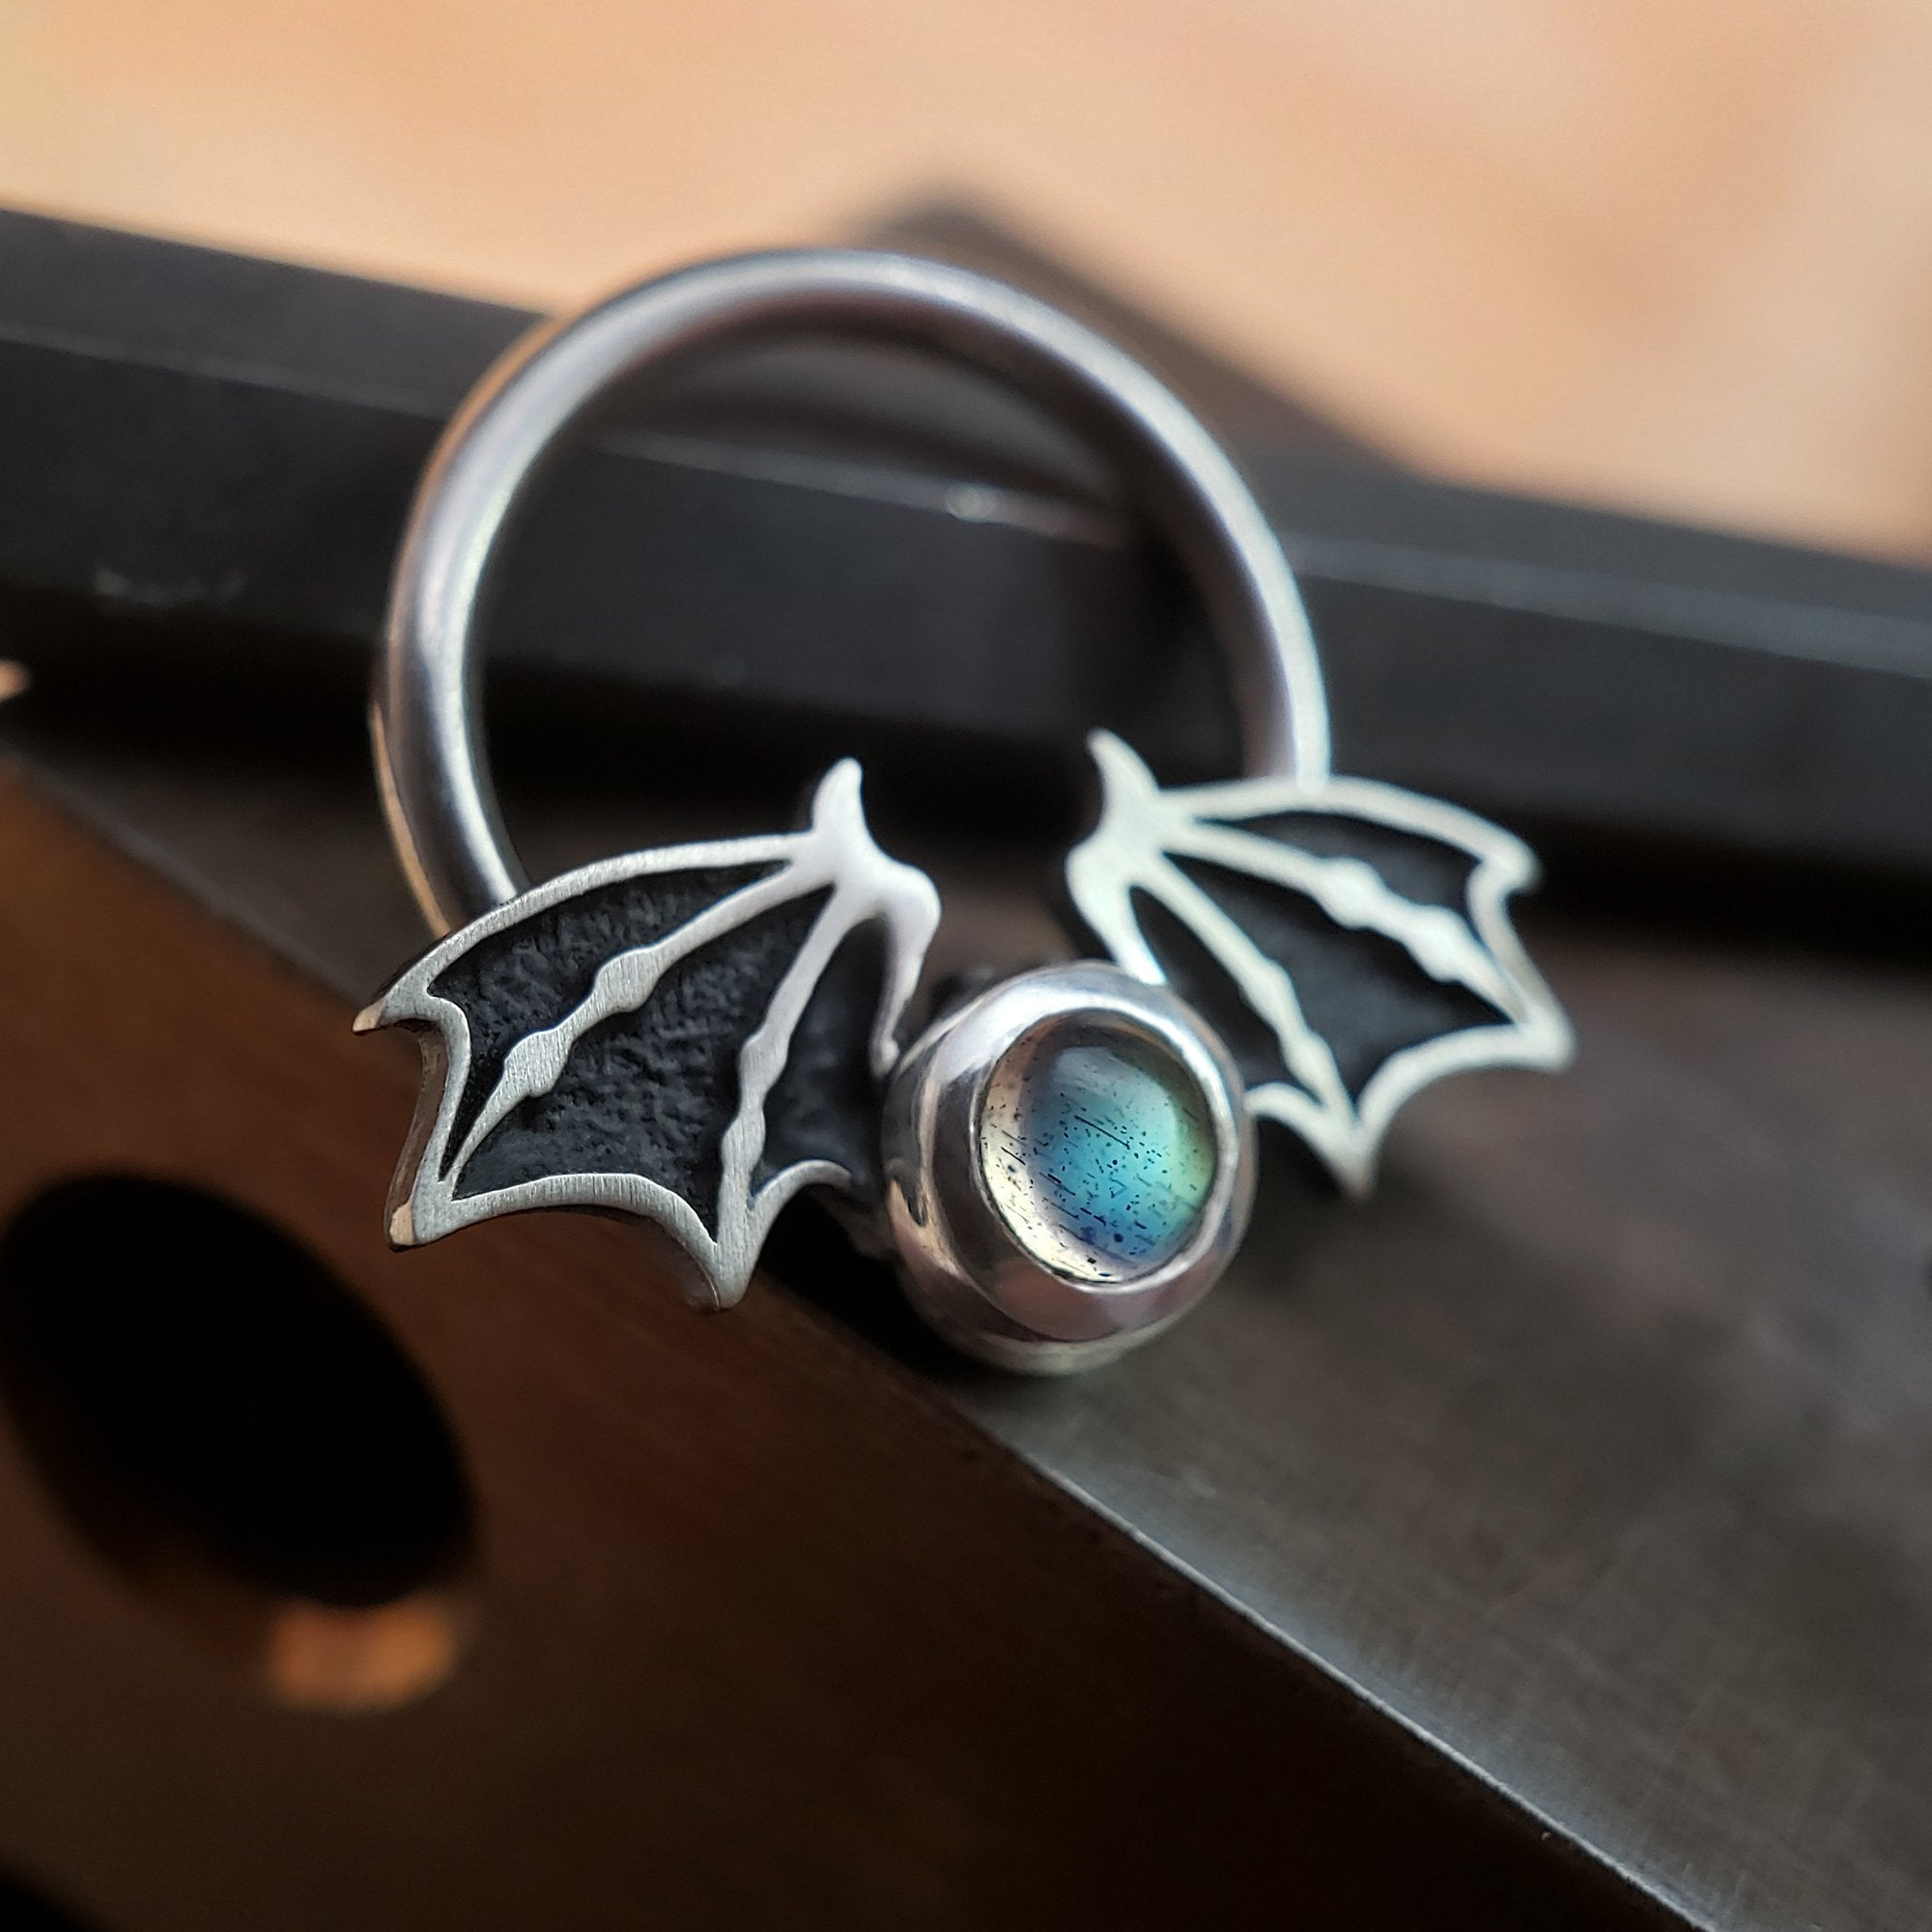 16G Labradorite Bat Captive Bead Ring - Metal Lotus